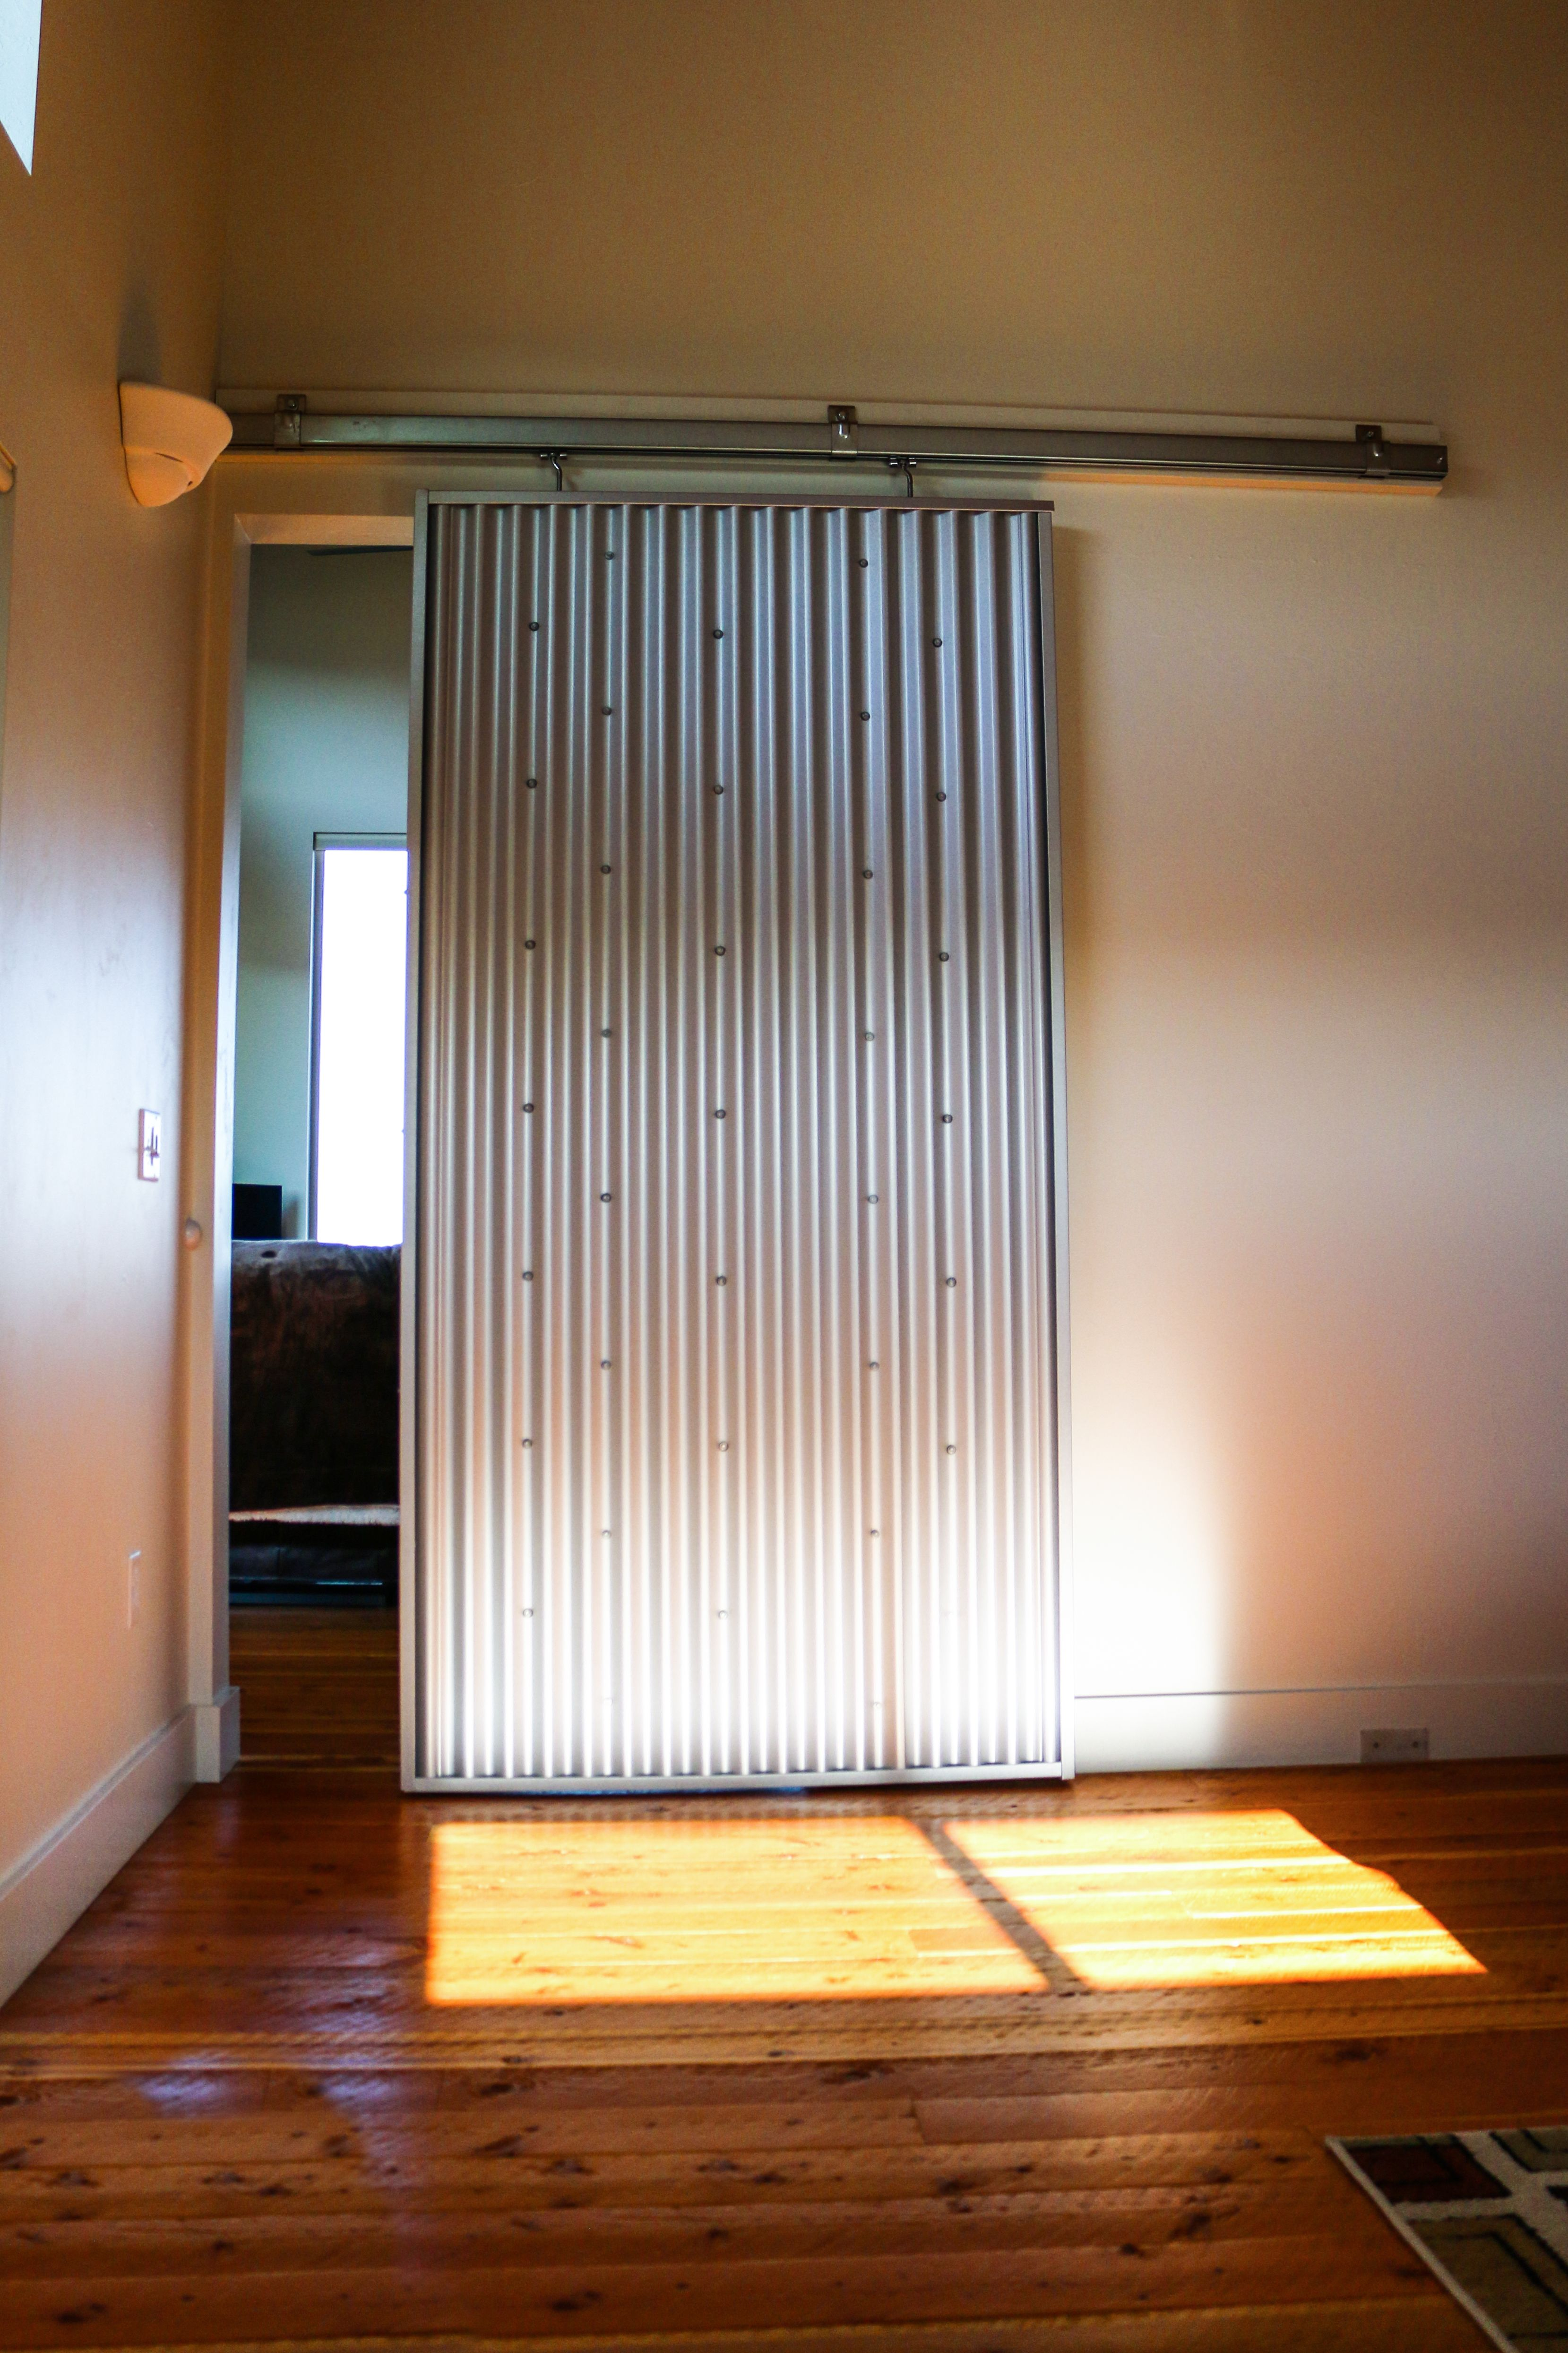 Check out this interior sliding door made from corrugated metal in